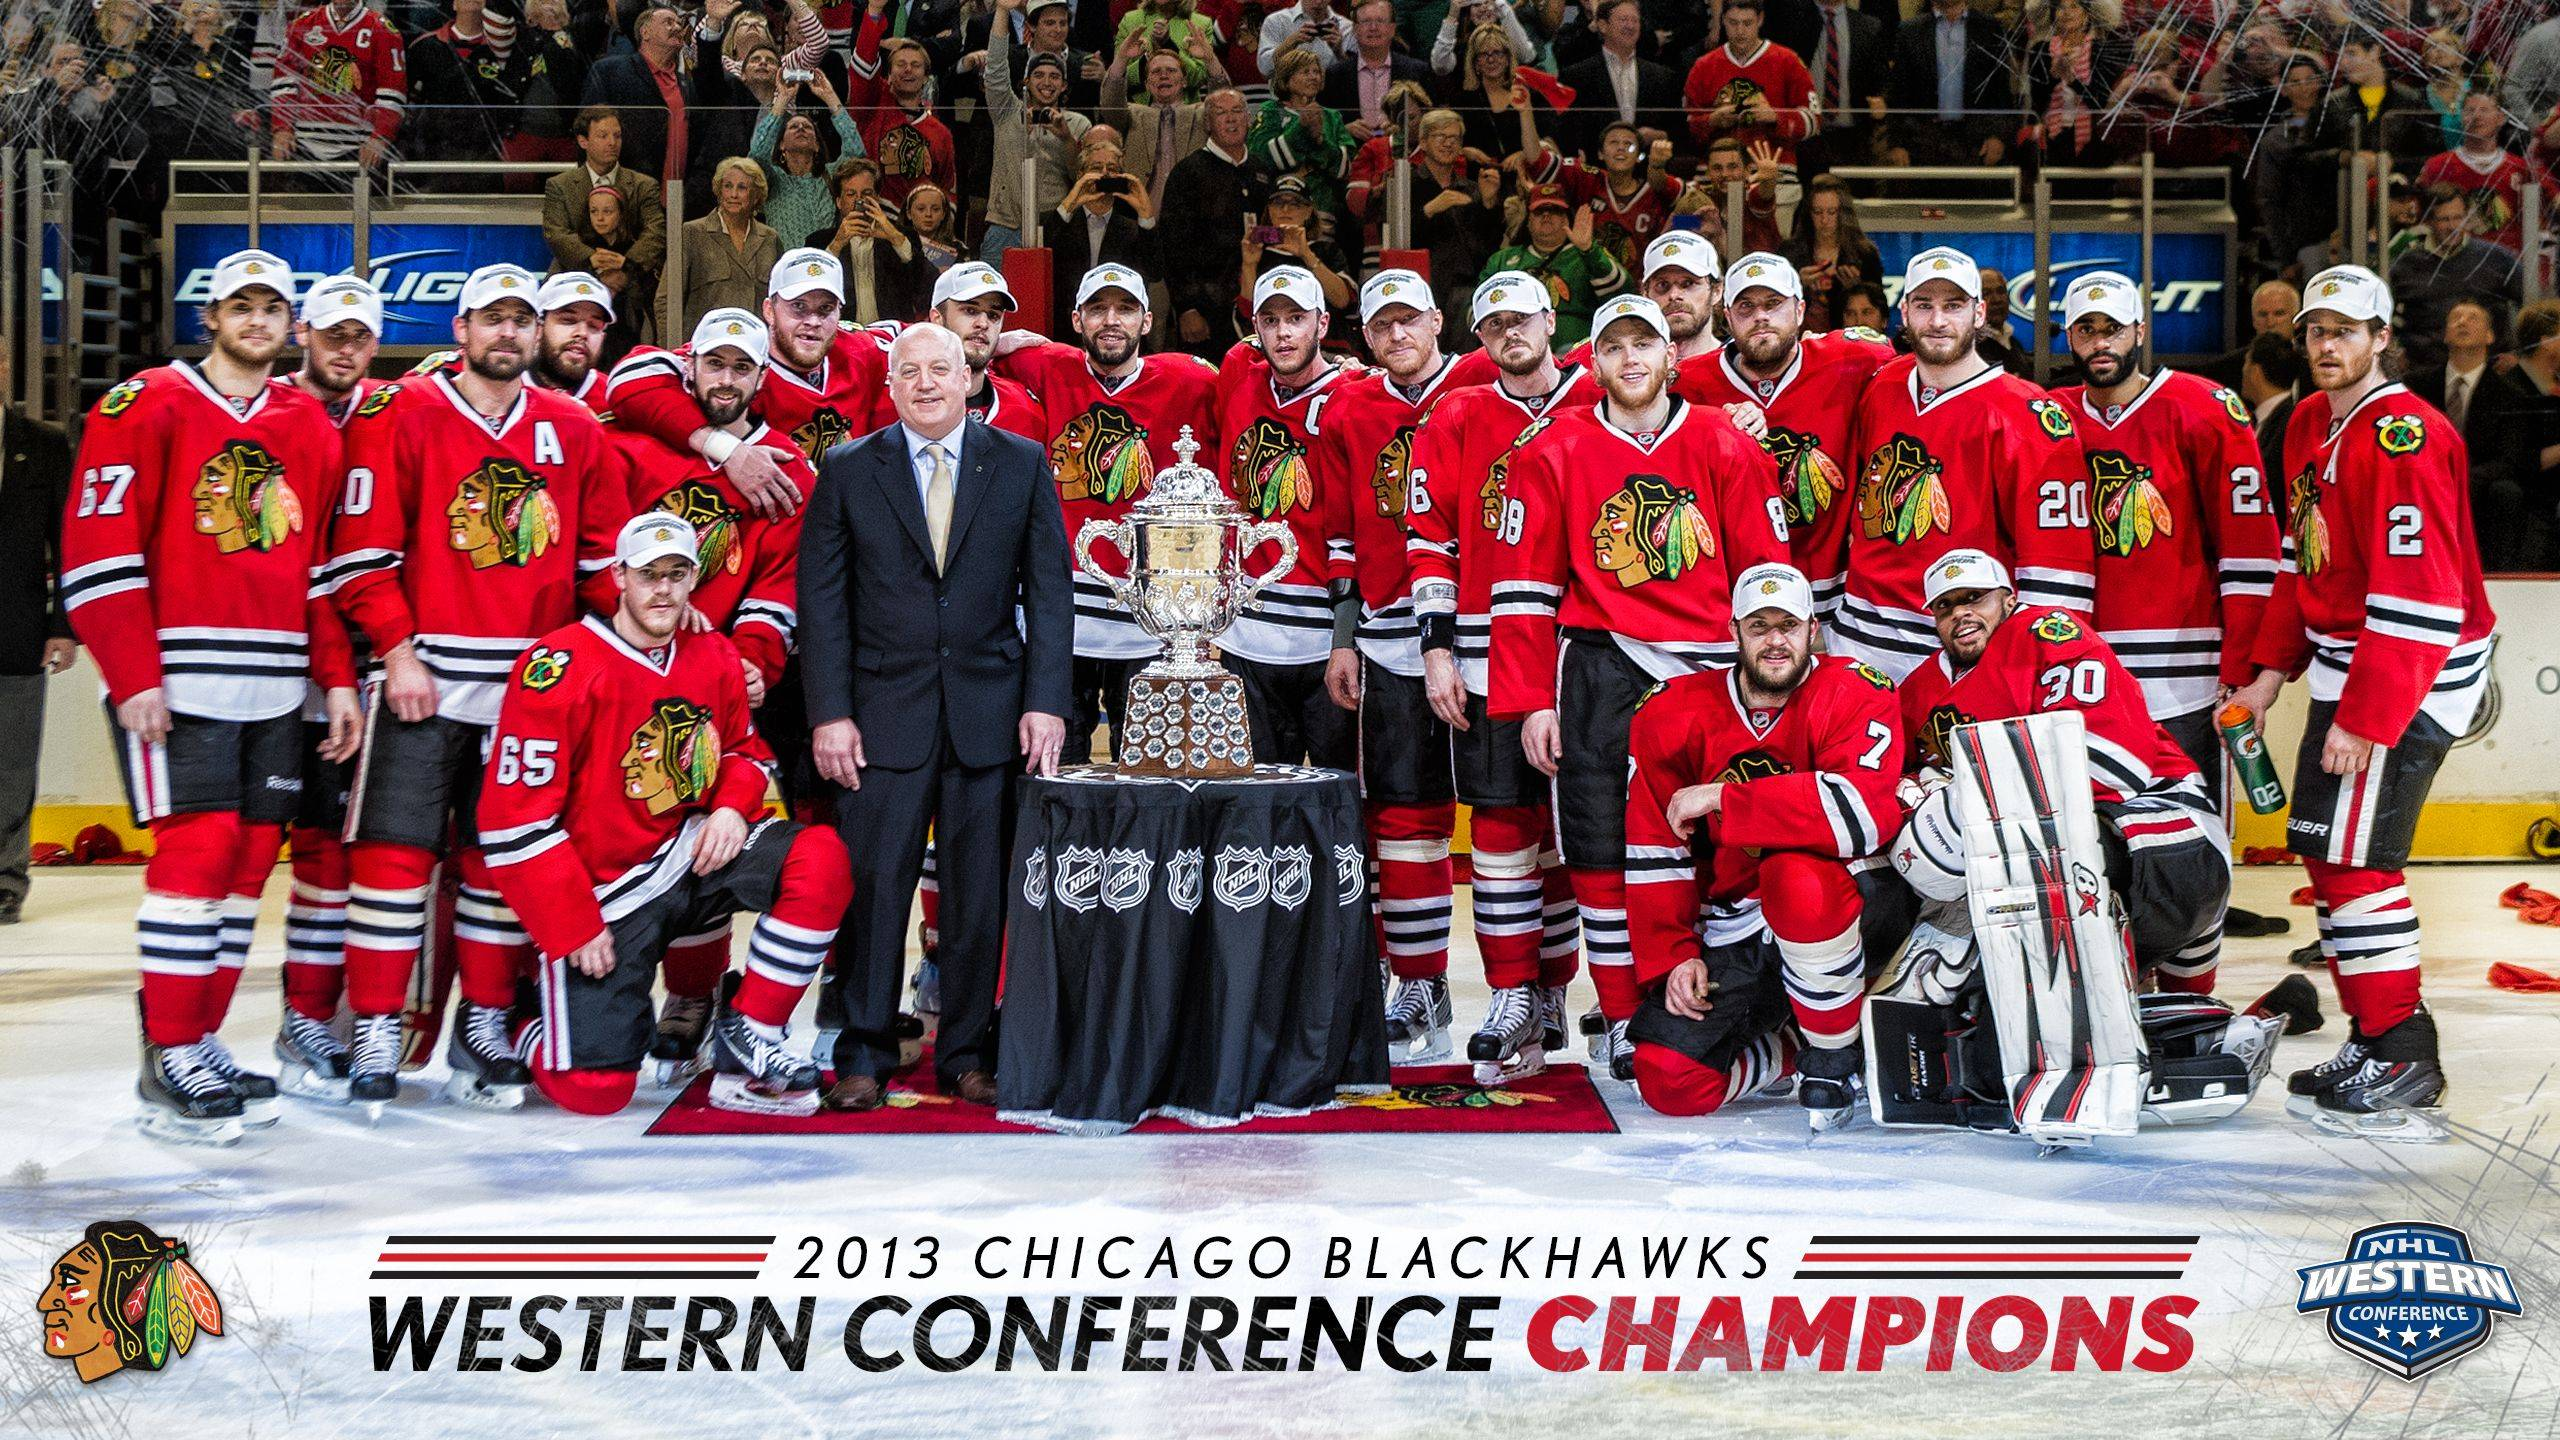 Chicago blackhawks desktop backgrounds wallpaper cave desktop wallpaper chicago blackhawks taken from washington voltagebd Image collections